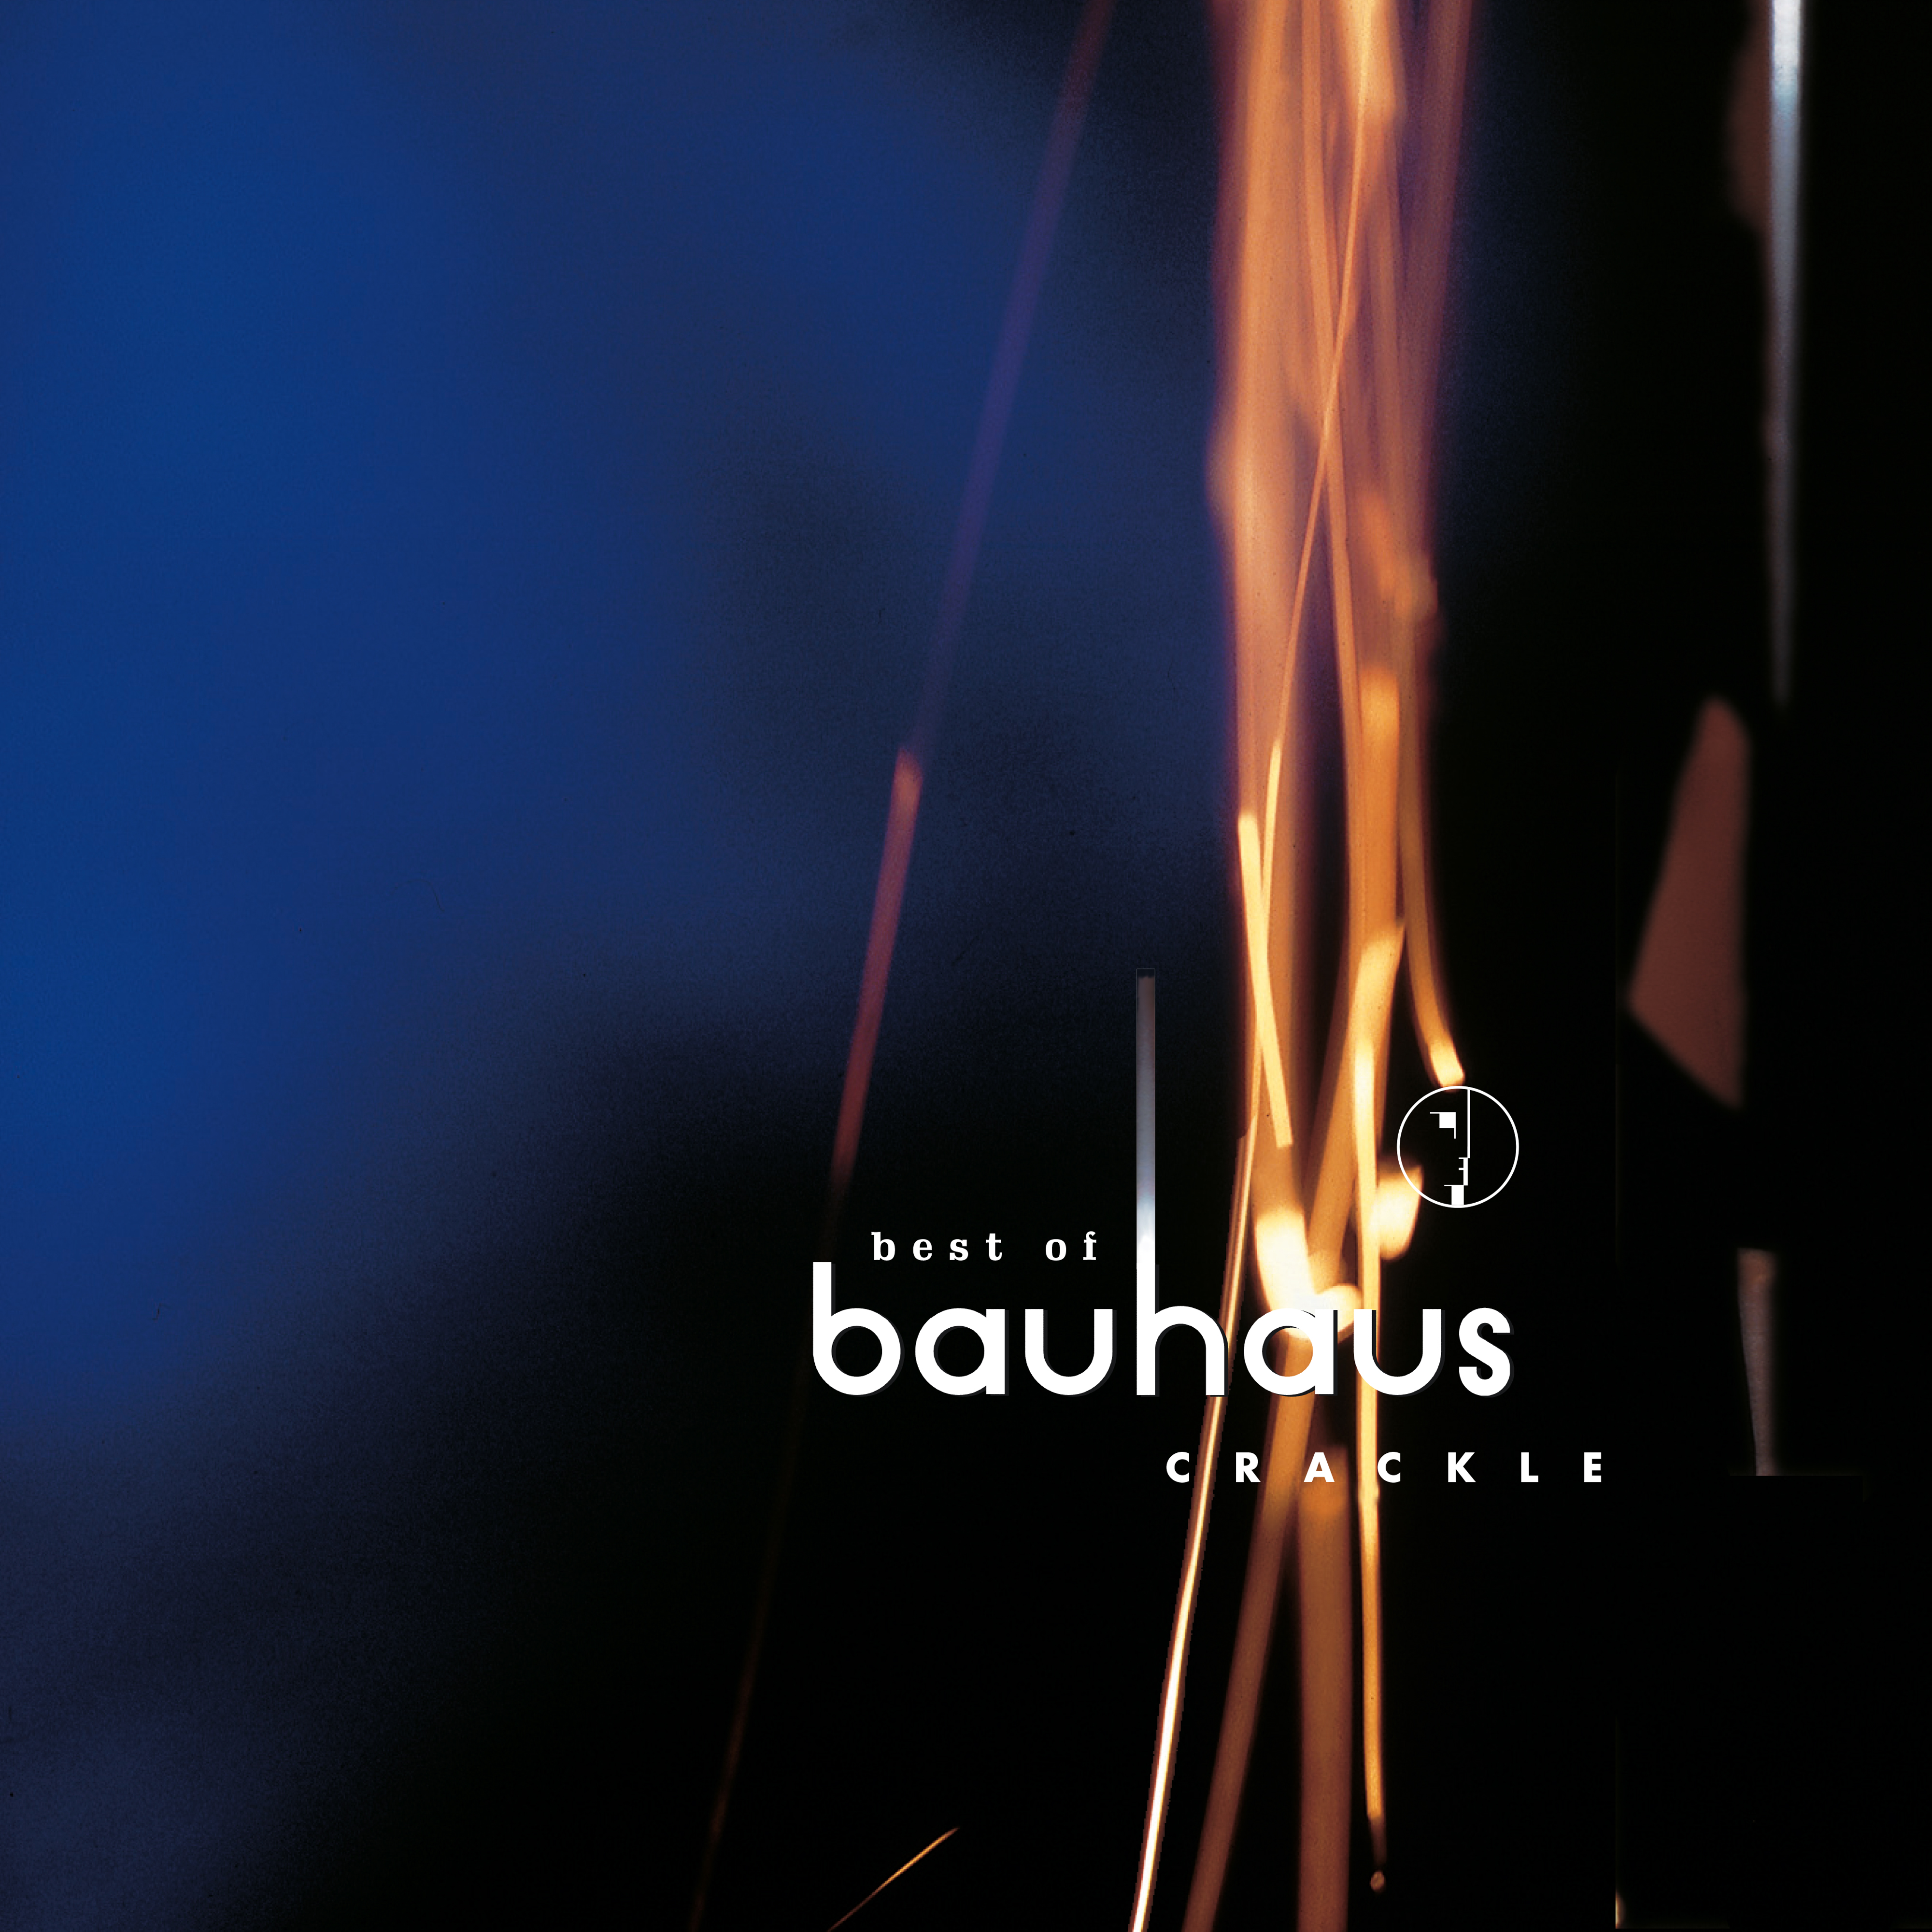 Array - Crackle: Best Of Bauhaus